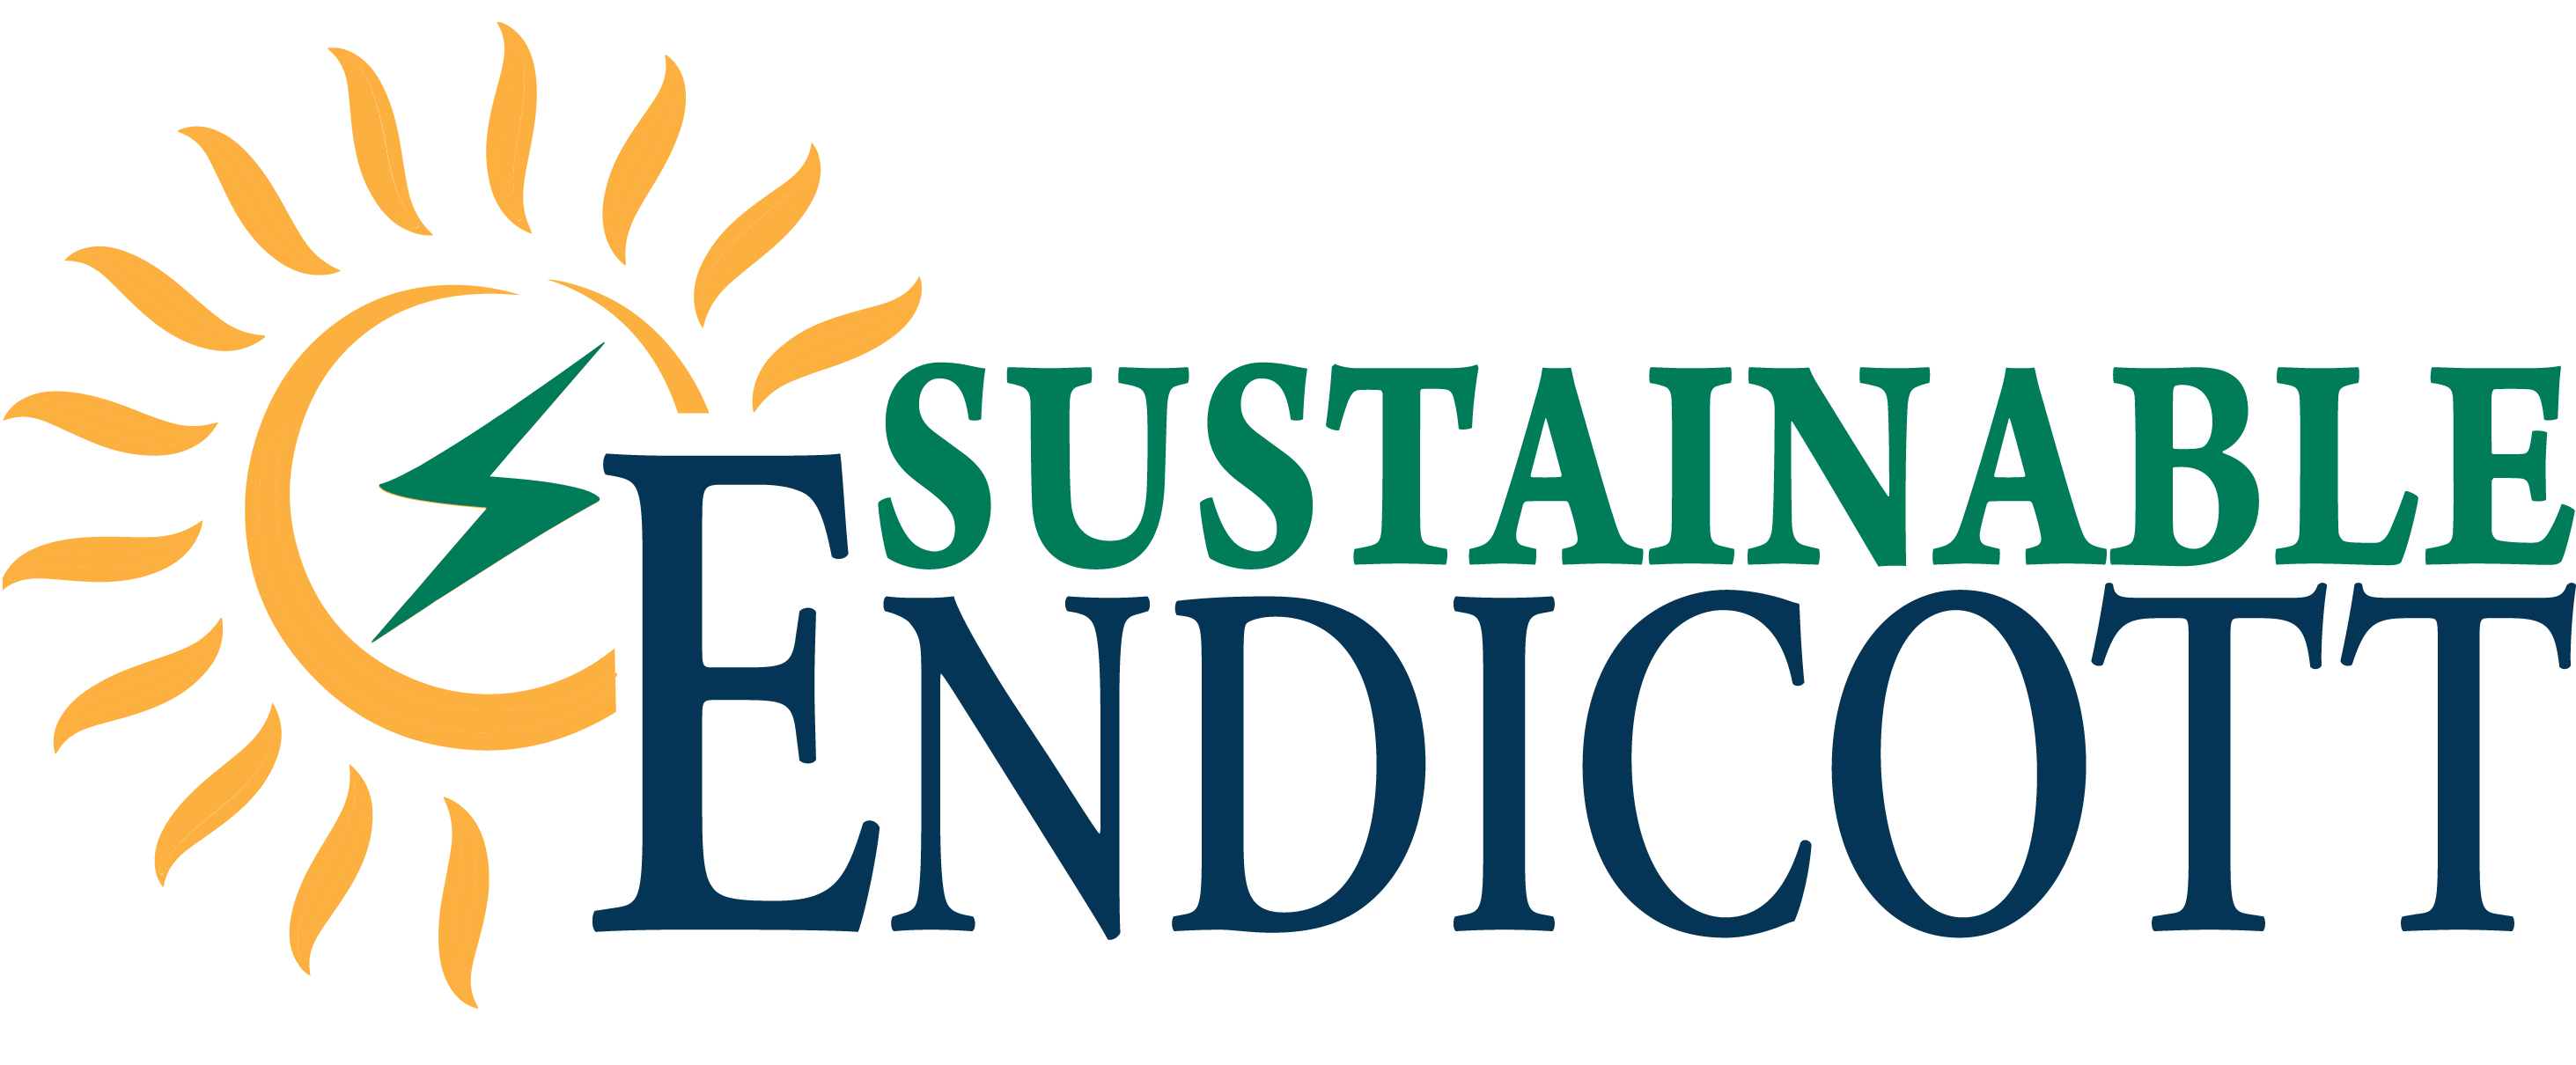 SustainableEndicott_3C